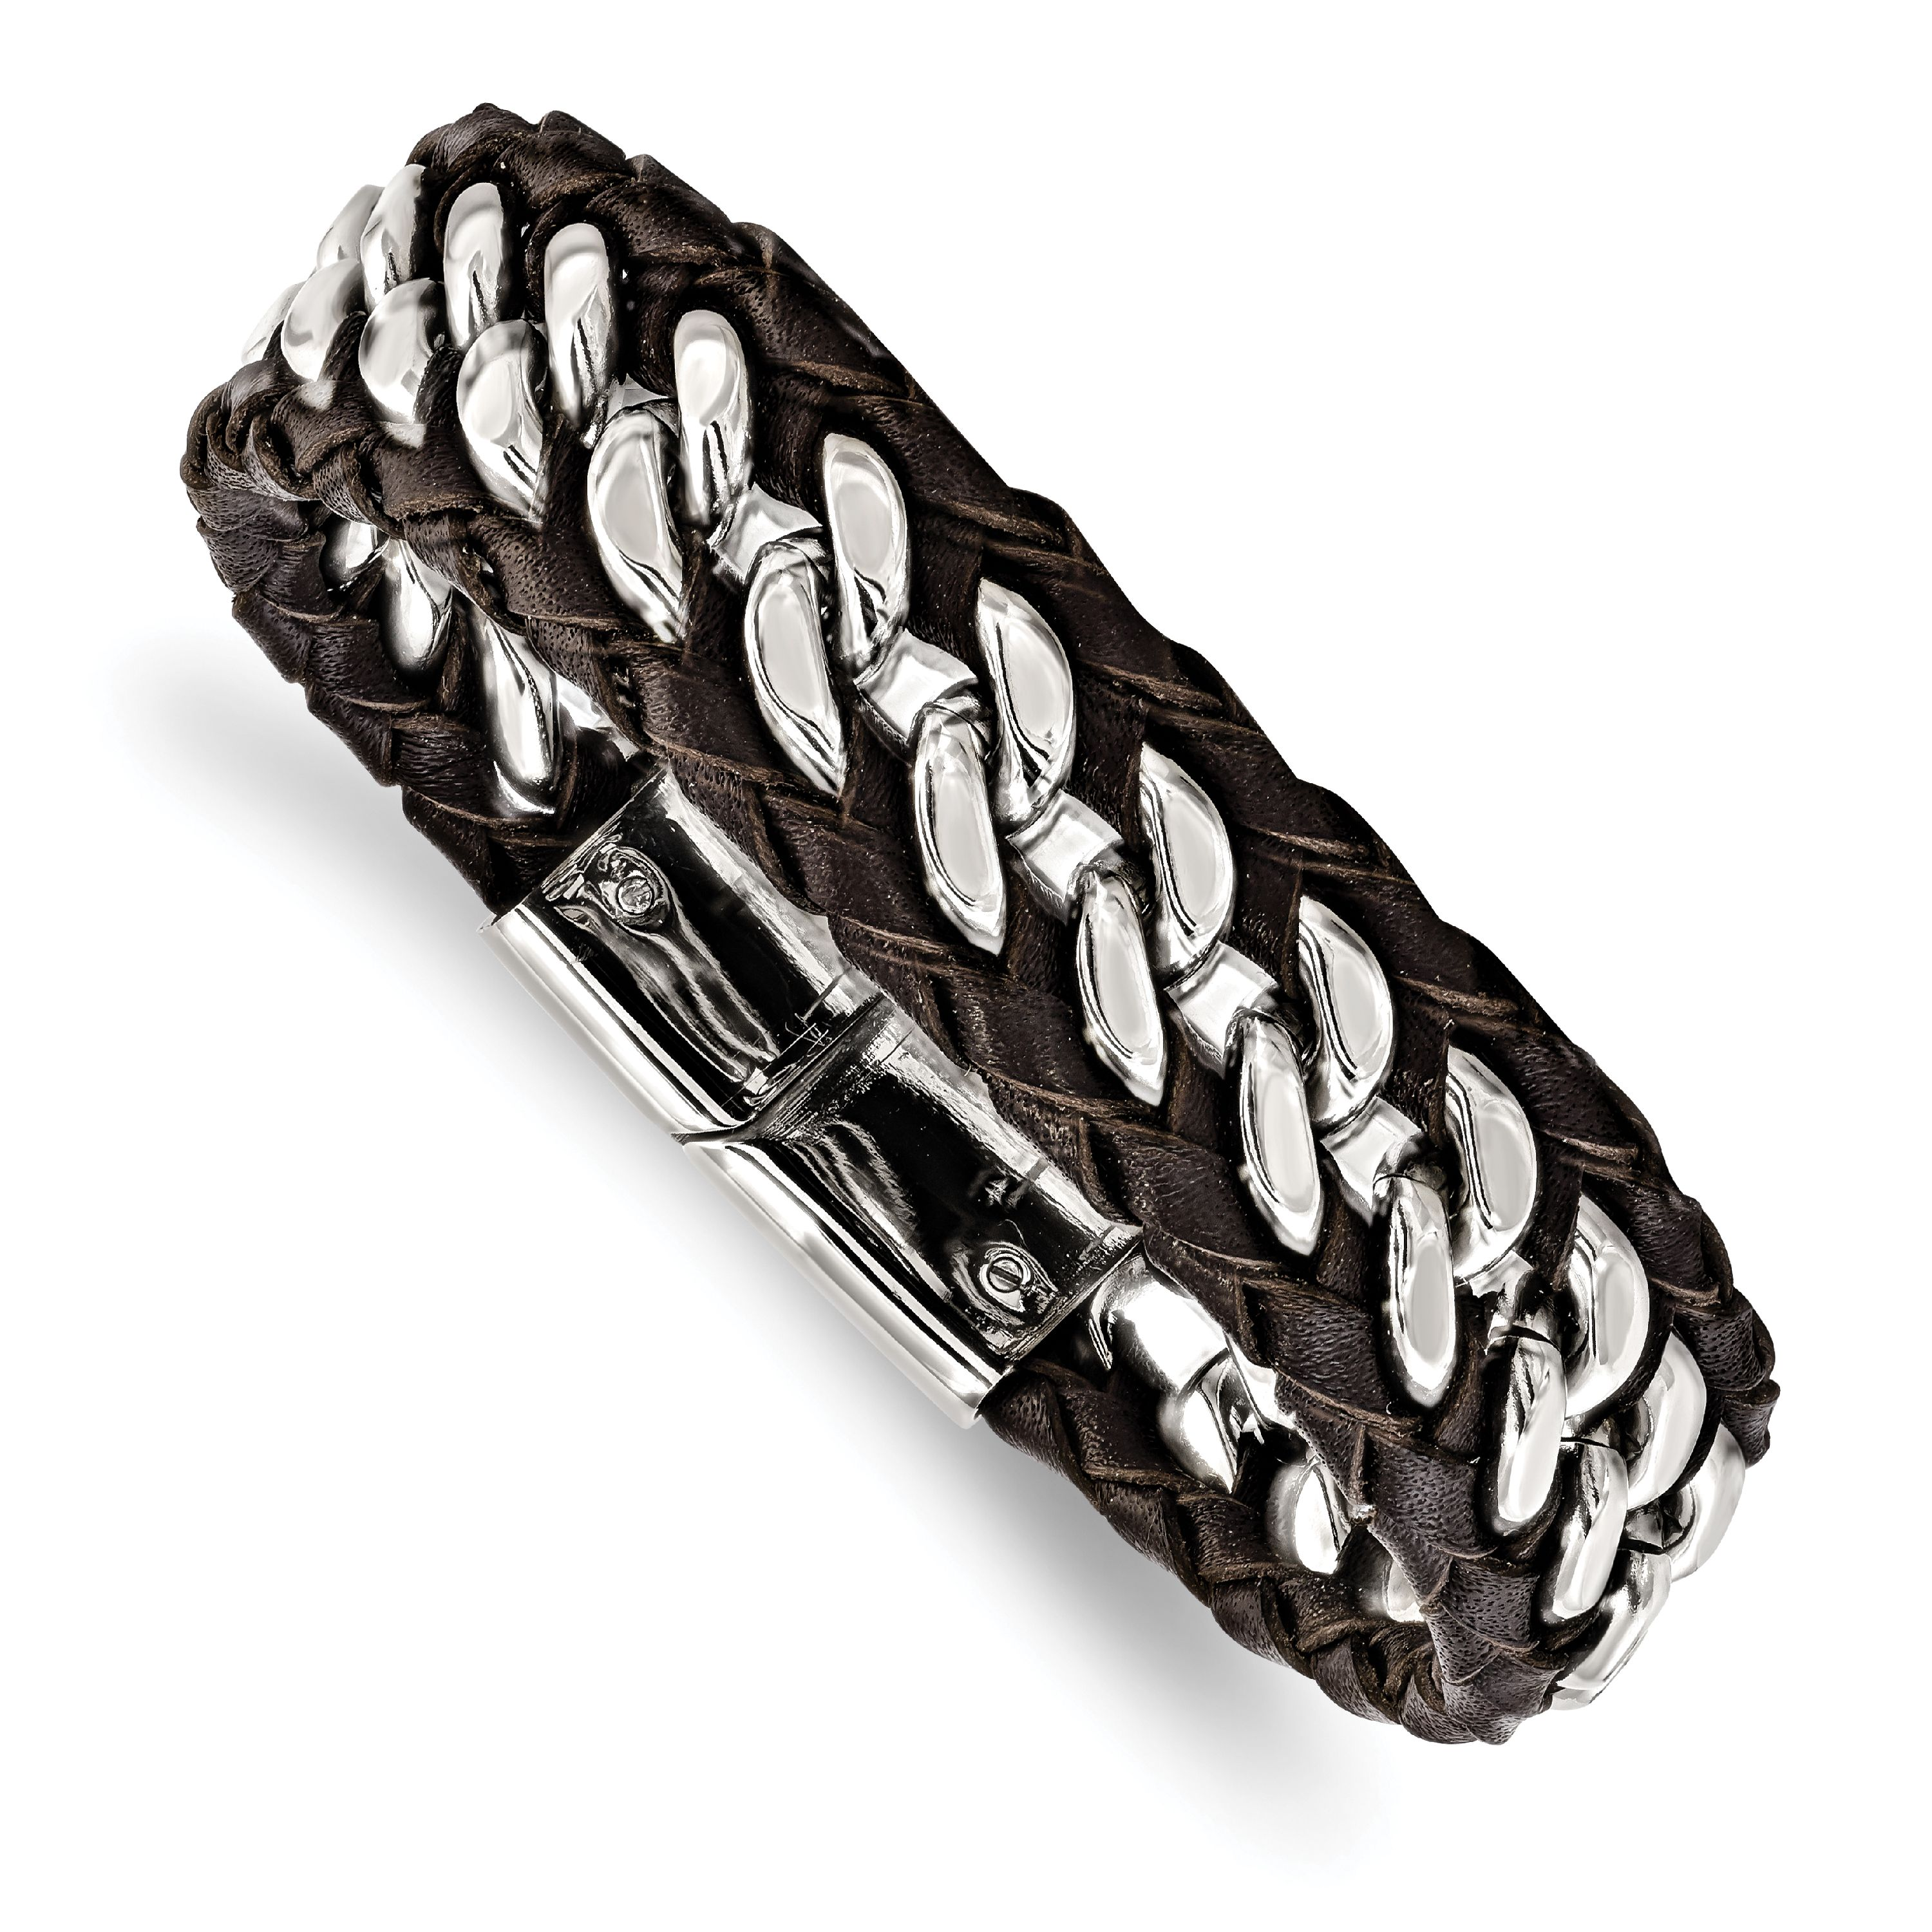 Stainless Steel Polished Brown Leather Bracelet 8.5in - image 2 of 2